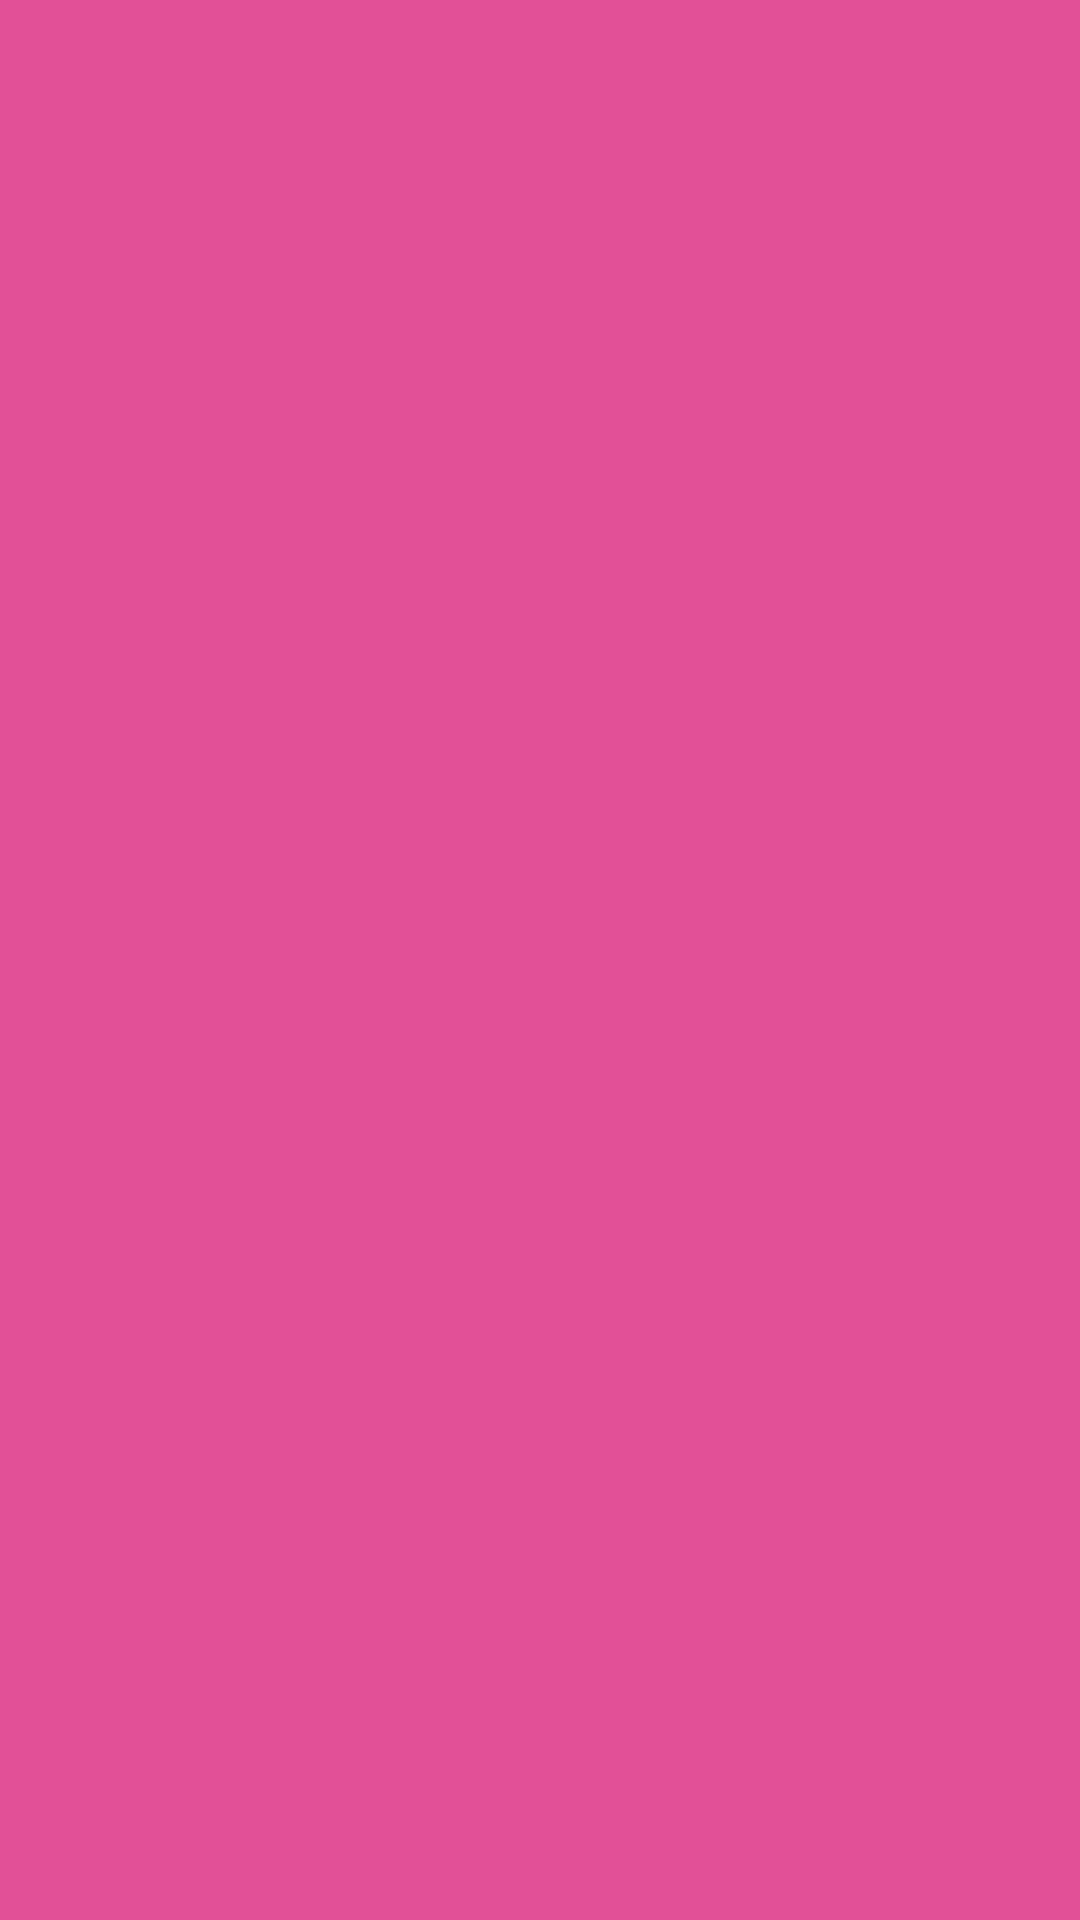 1080x1920 Raspberry Pink Solid Color Background